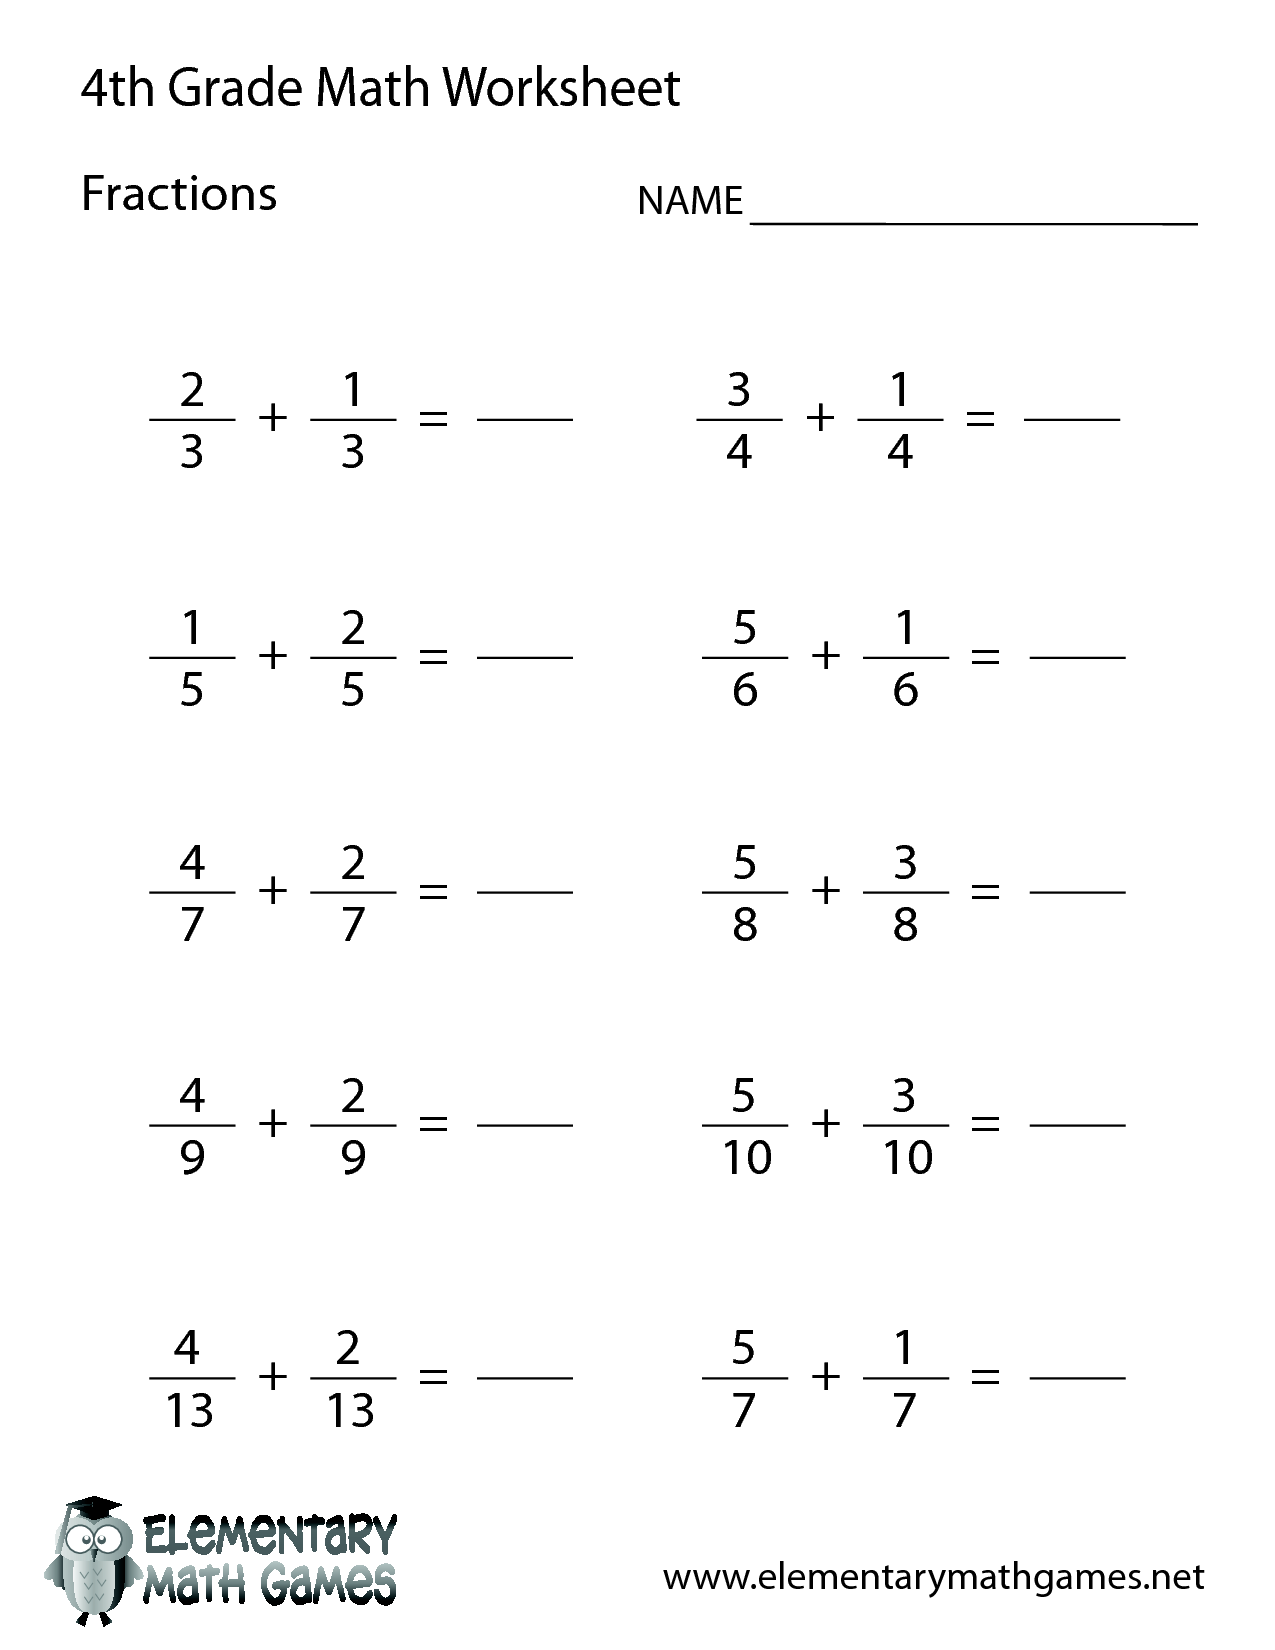 Free Ks3 Maths Worksheets and Collections Of Free Printable Math Fraction Worksheets Bridal